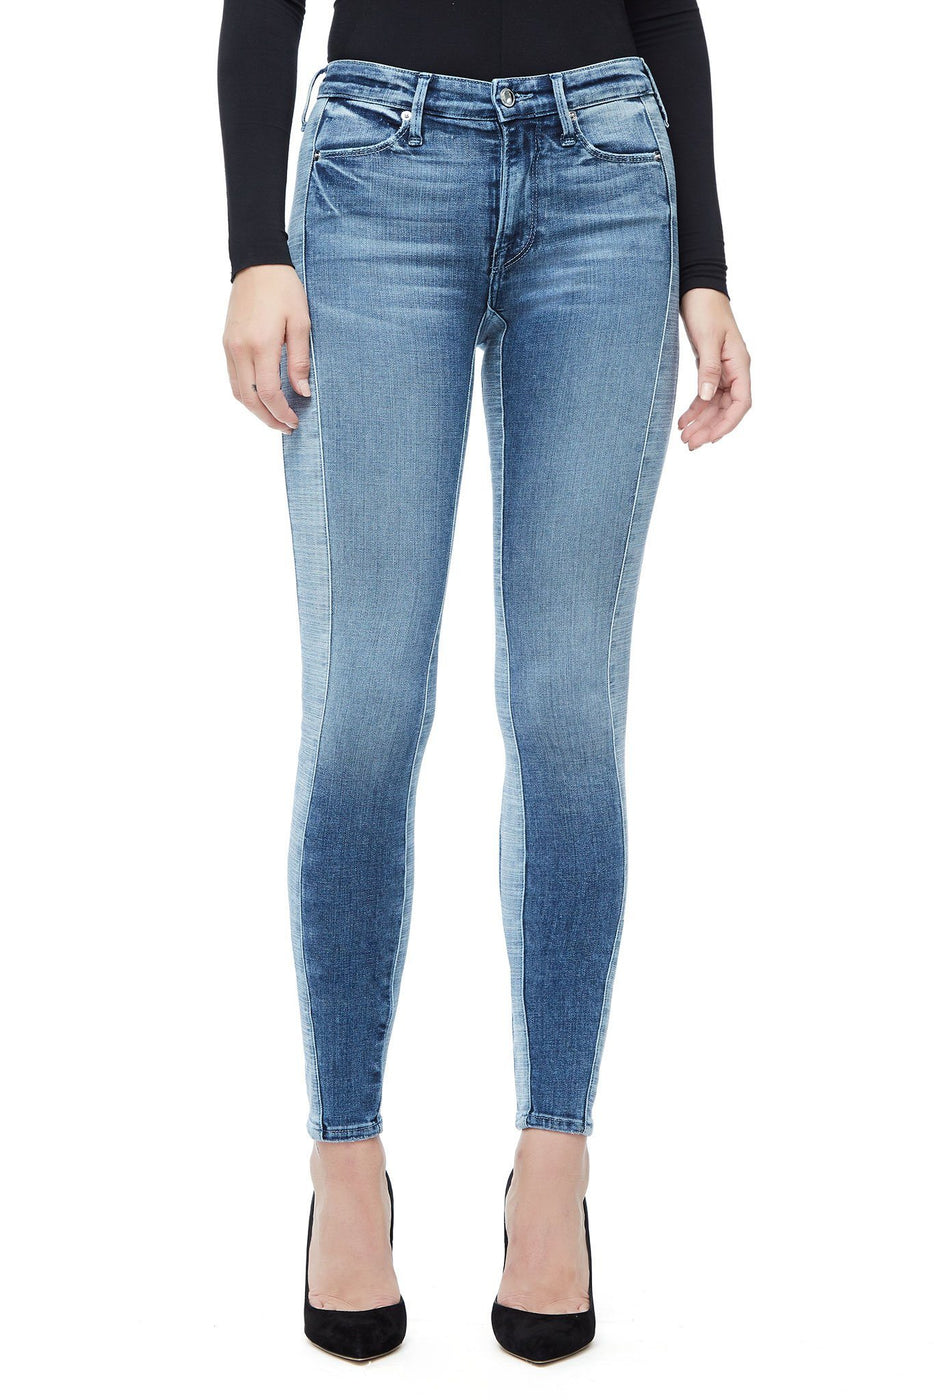 Good American Super High Waisted Crop Mix Blue128 Jeans